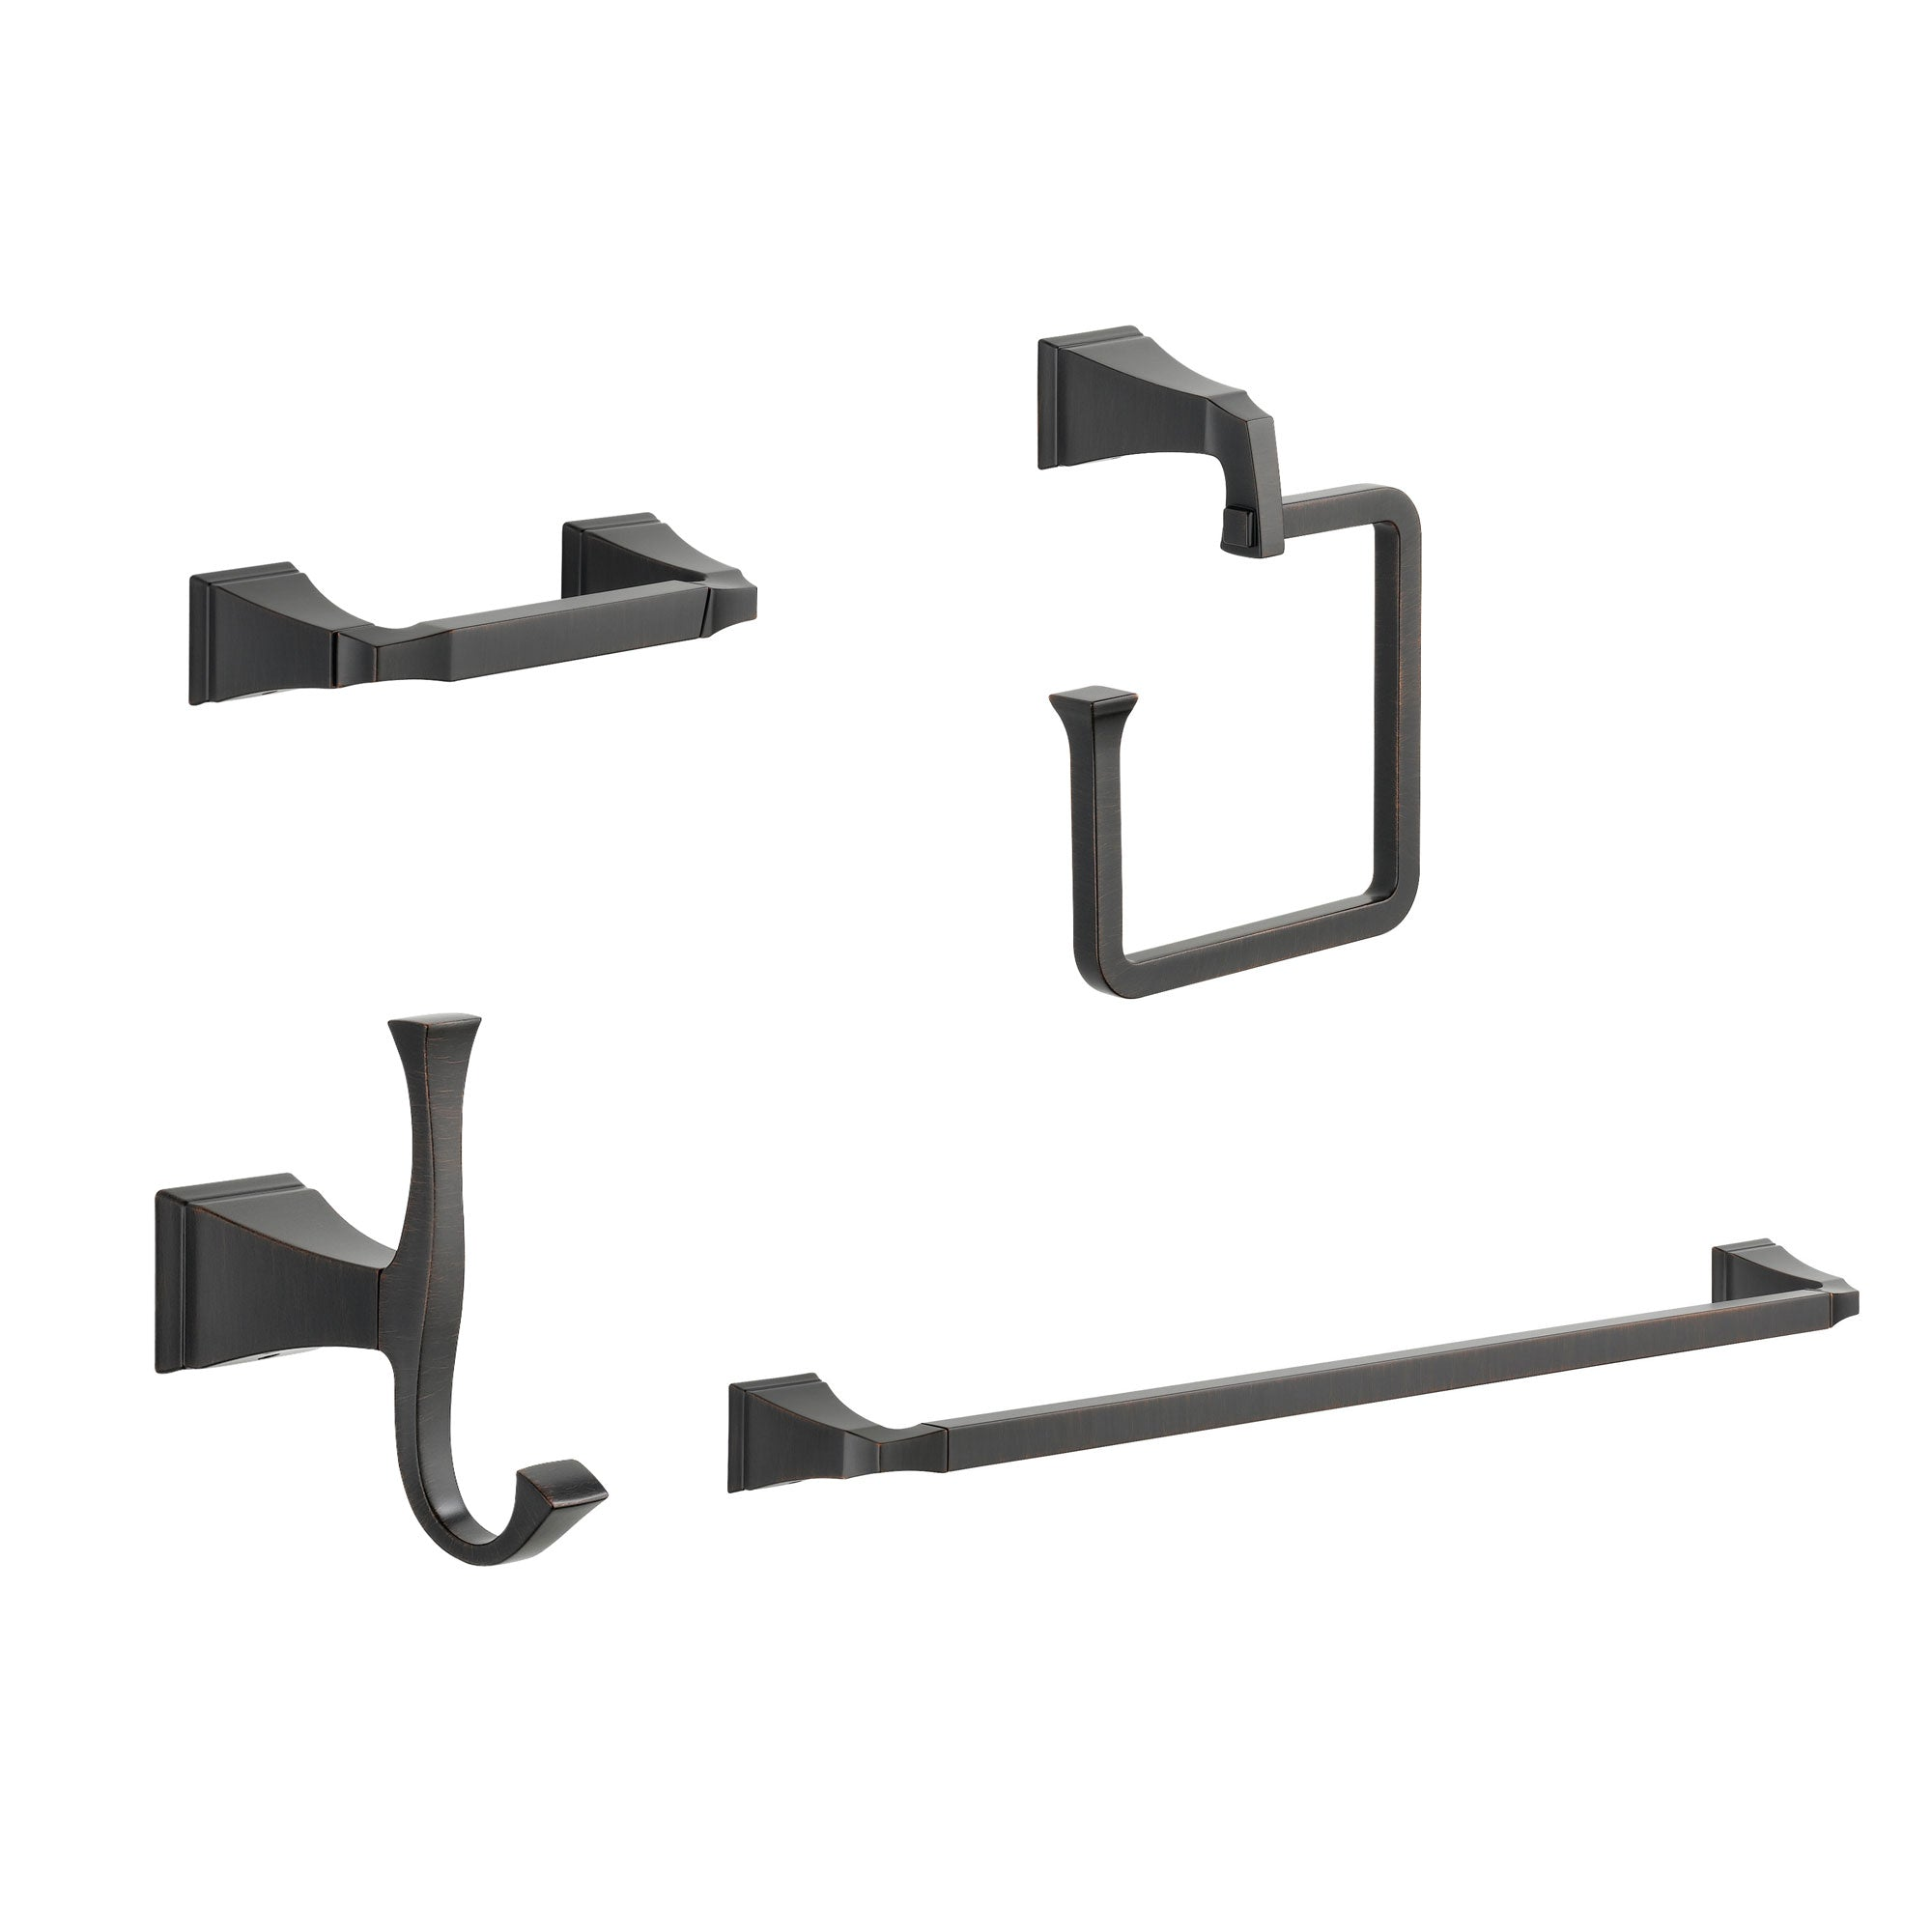 "Delta Dryden Venetian Bronze STANDARD Bathroom Accessory Set Includes: 24"" Towel Bar, Toilet Paper Holder, Robe Hook, and Towel Ring D10044AP"